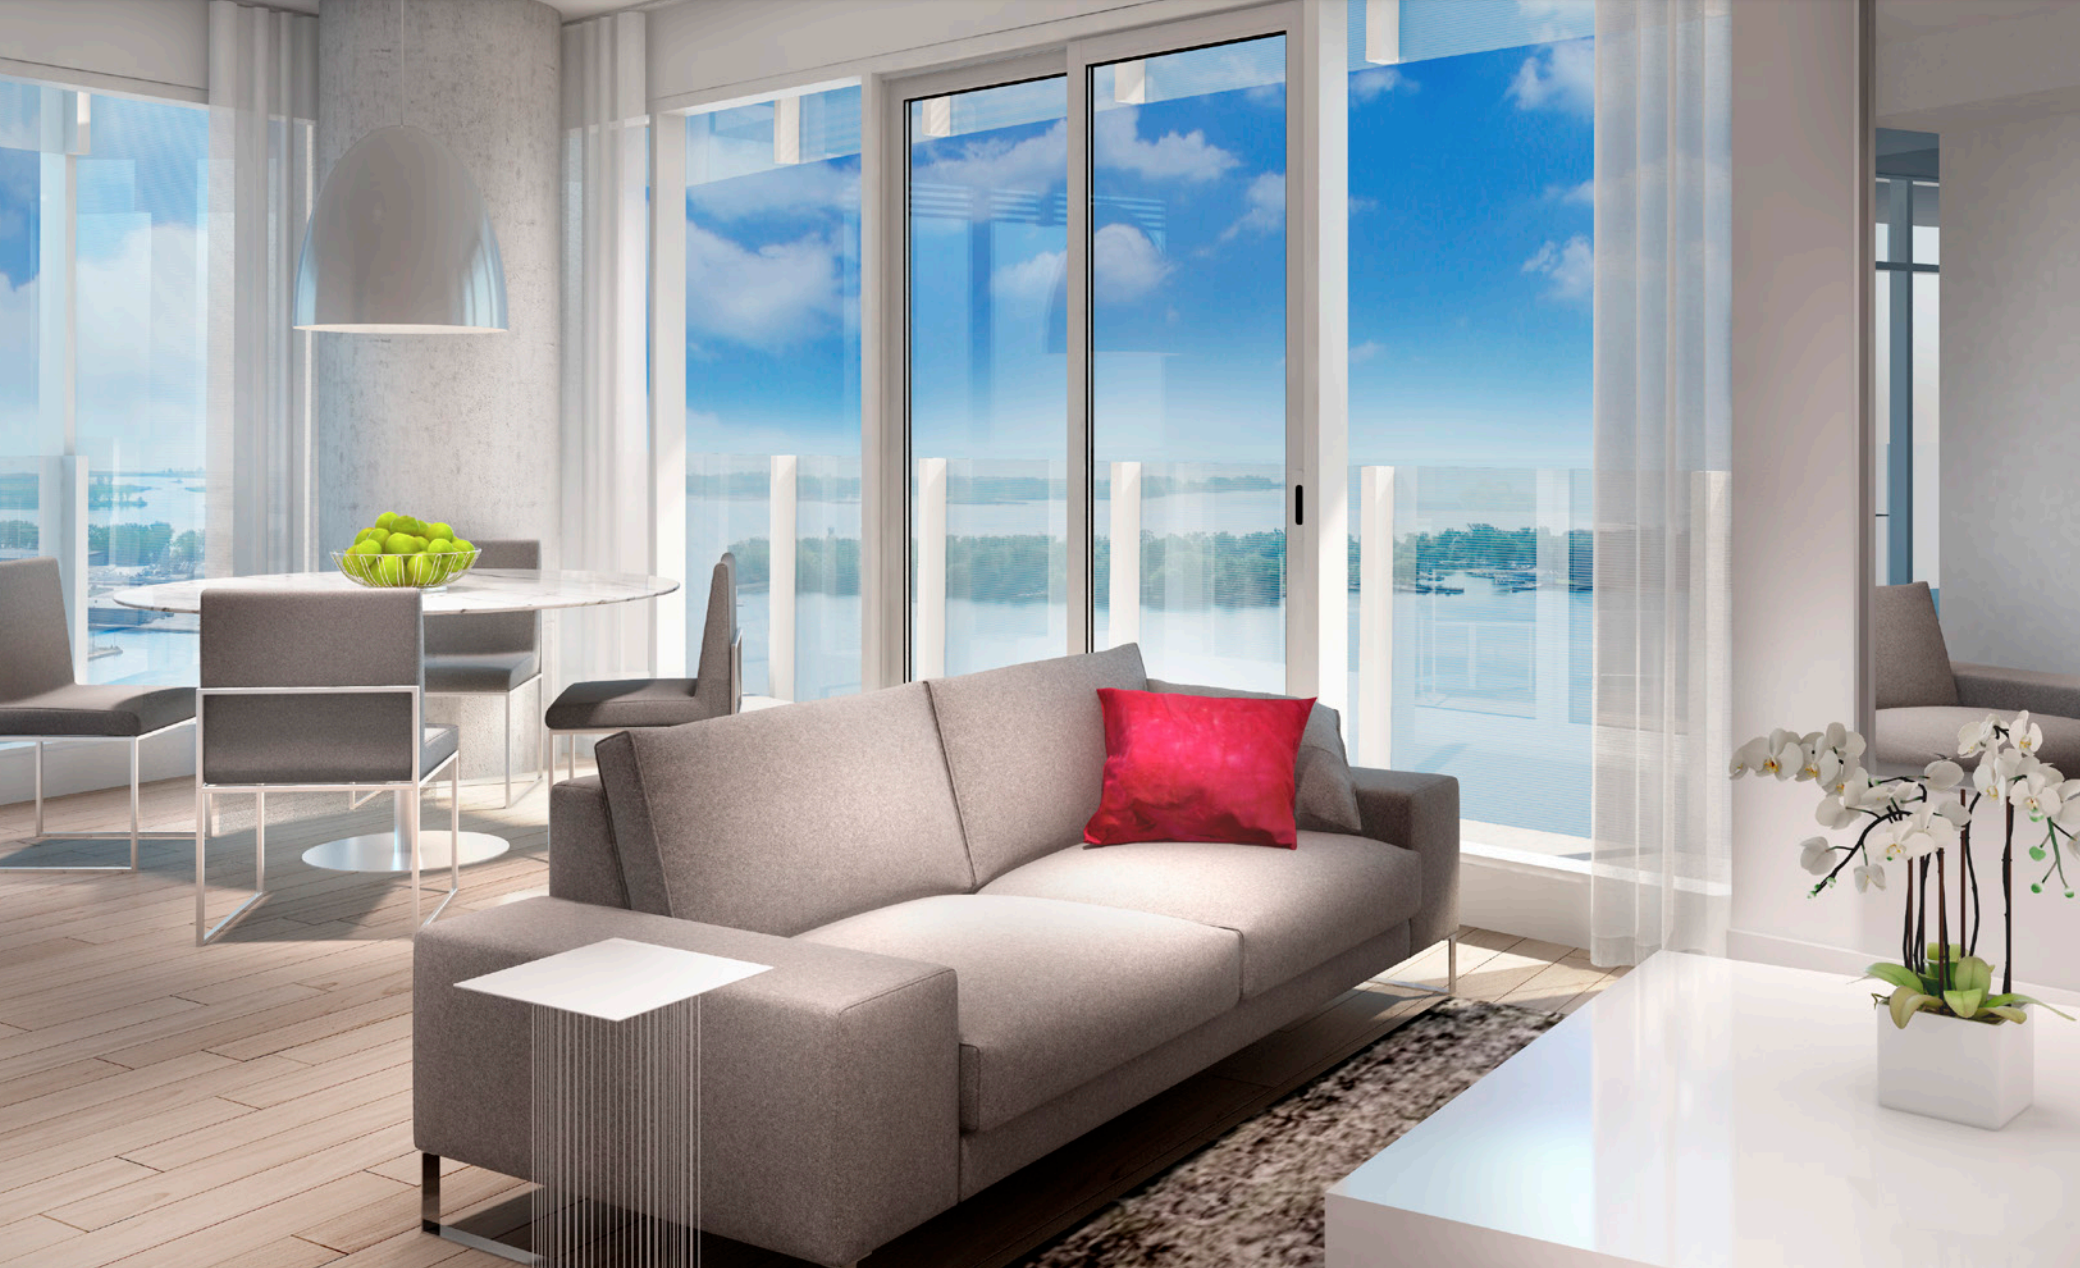 Lakeside-Rendering-4-Interior